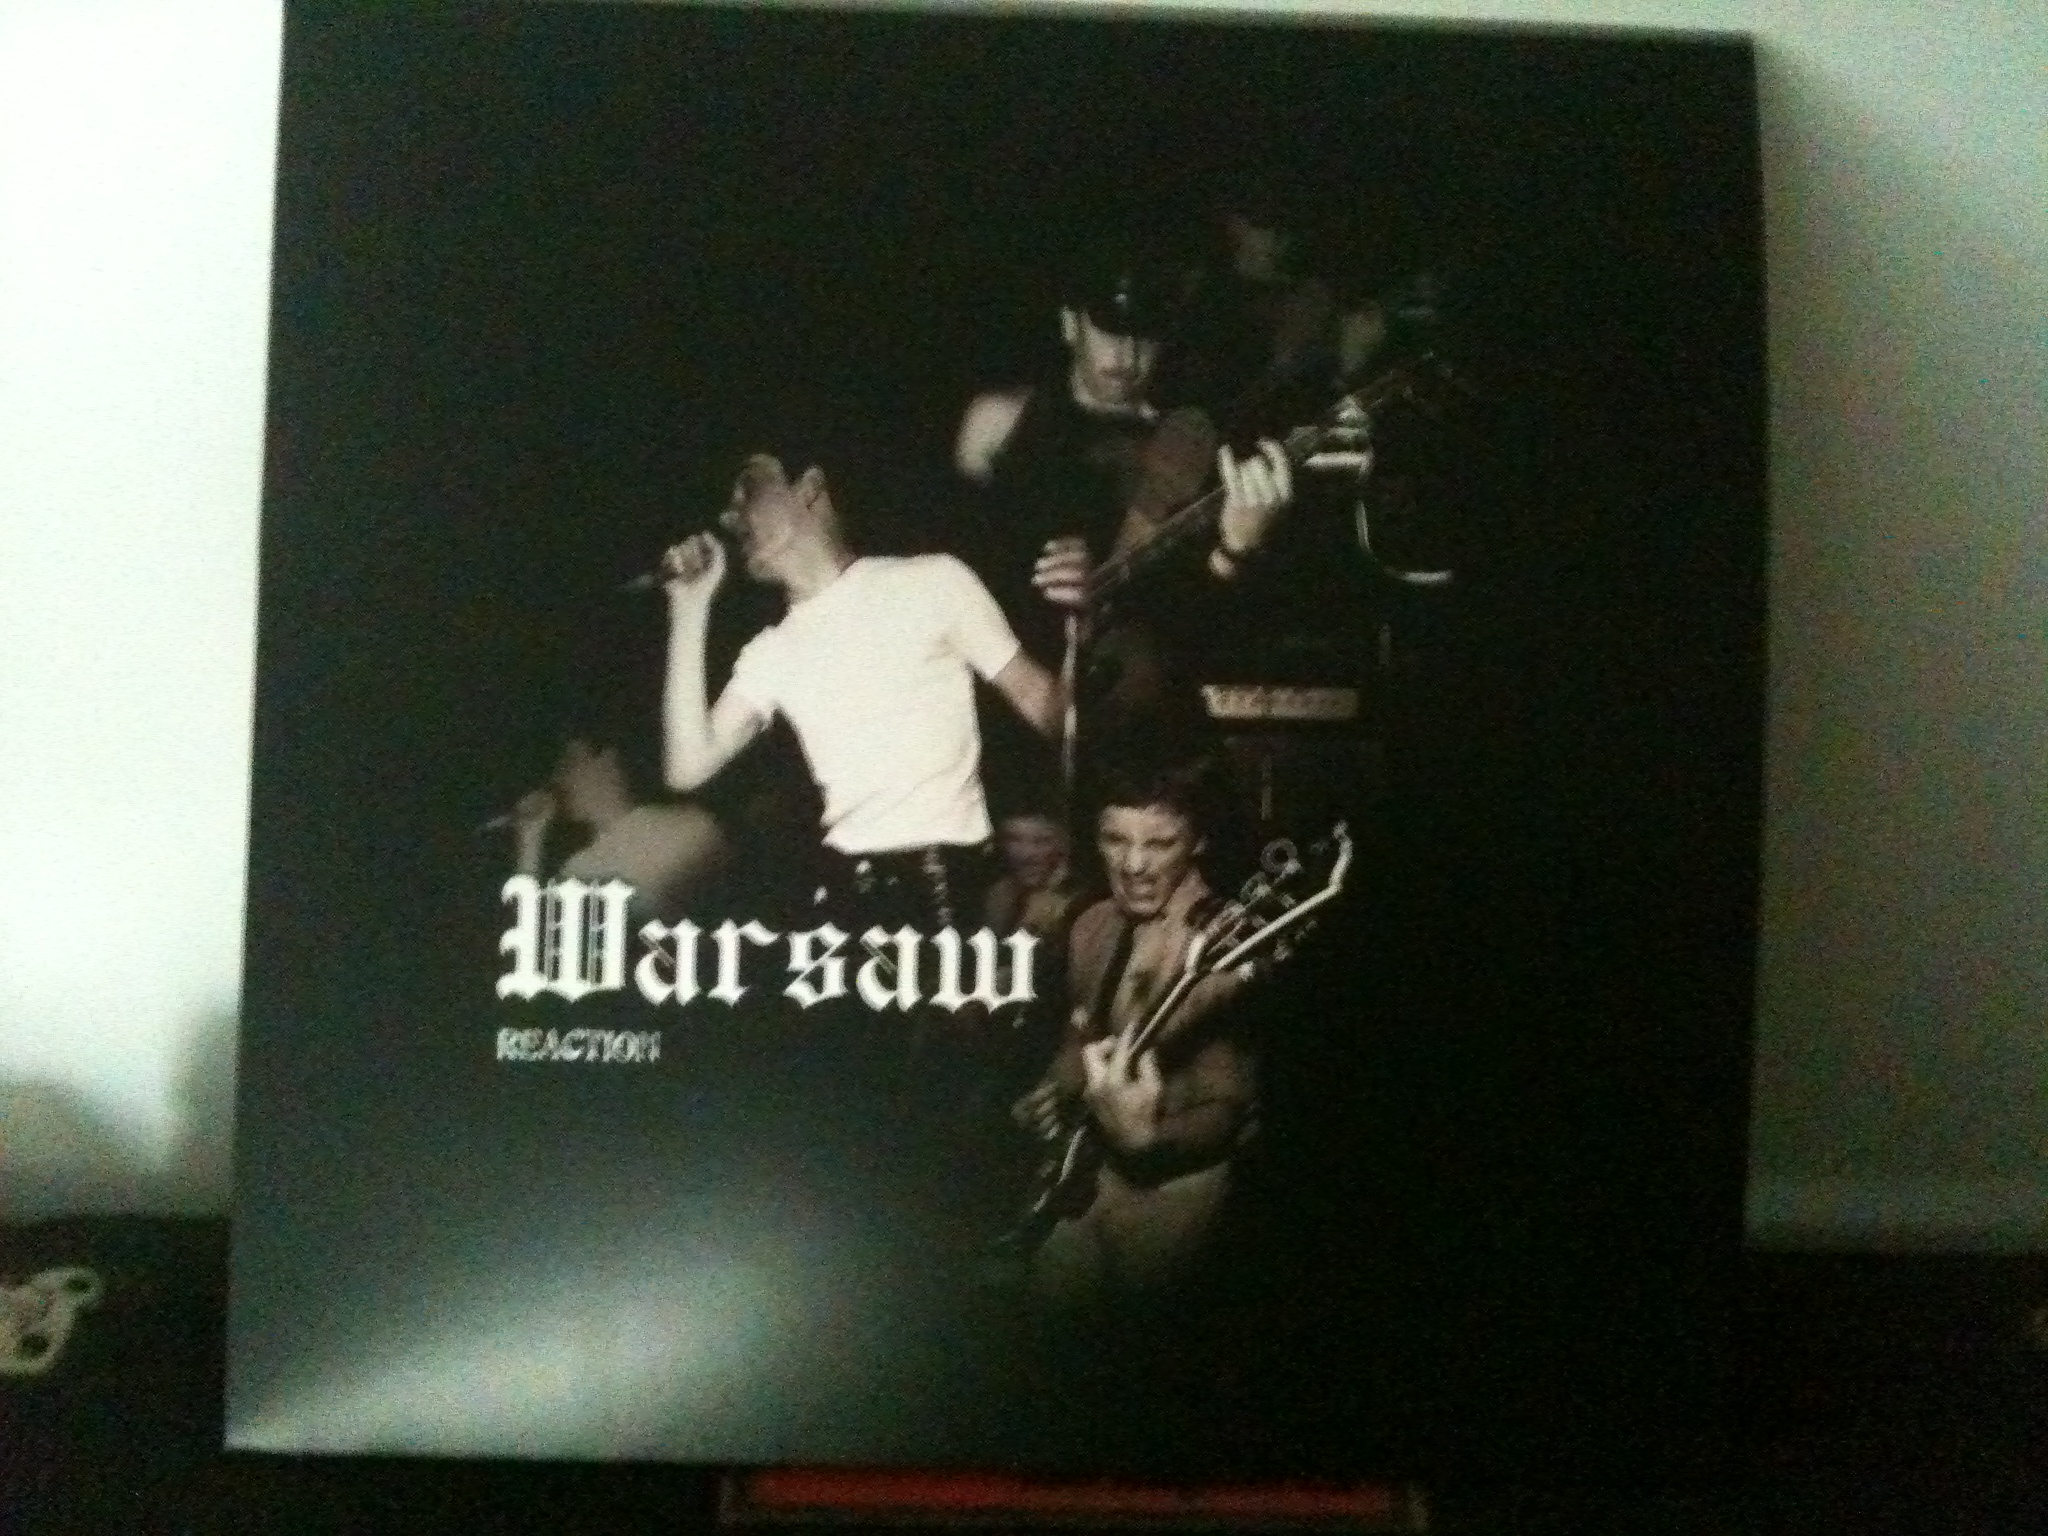 Warsaw(Joy Division)/REACTION 1977 LP